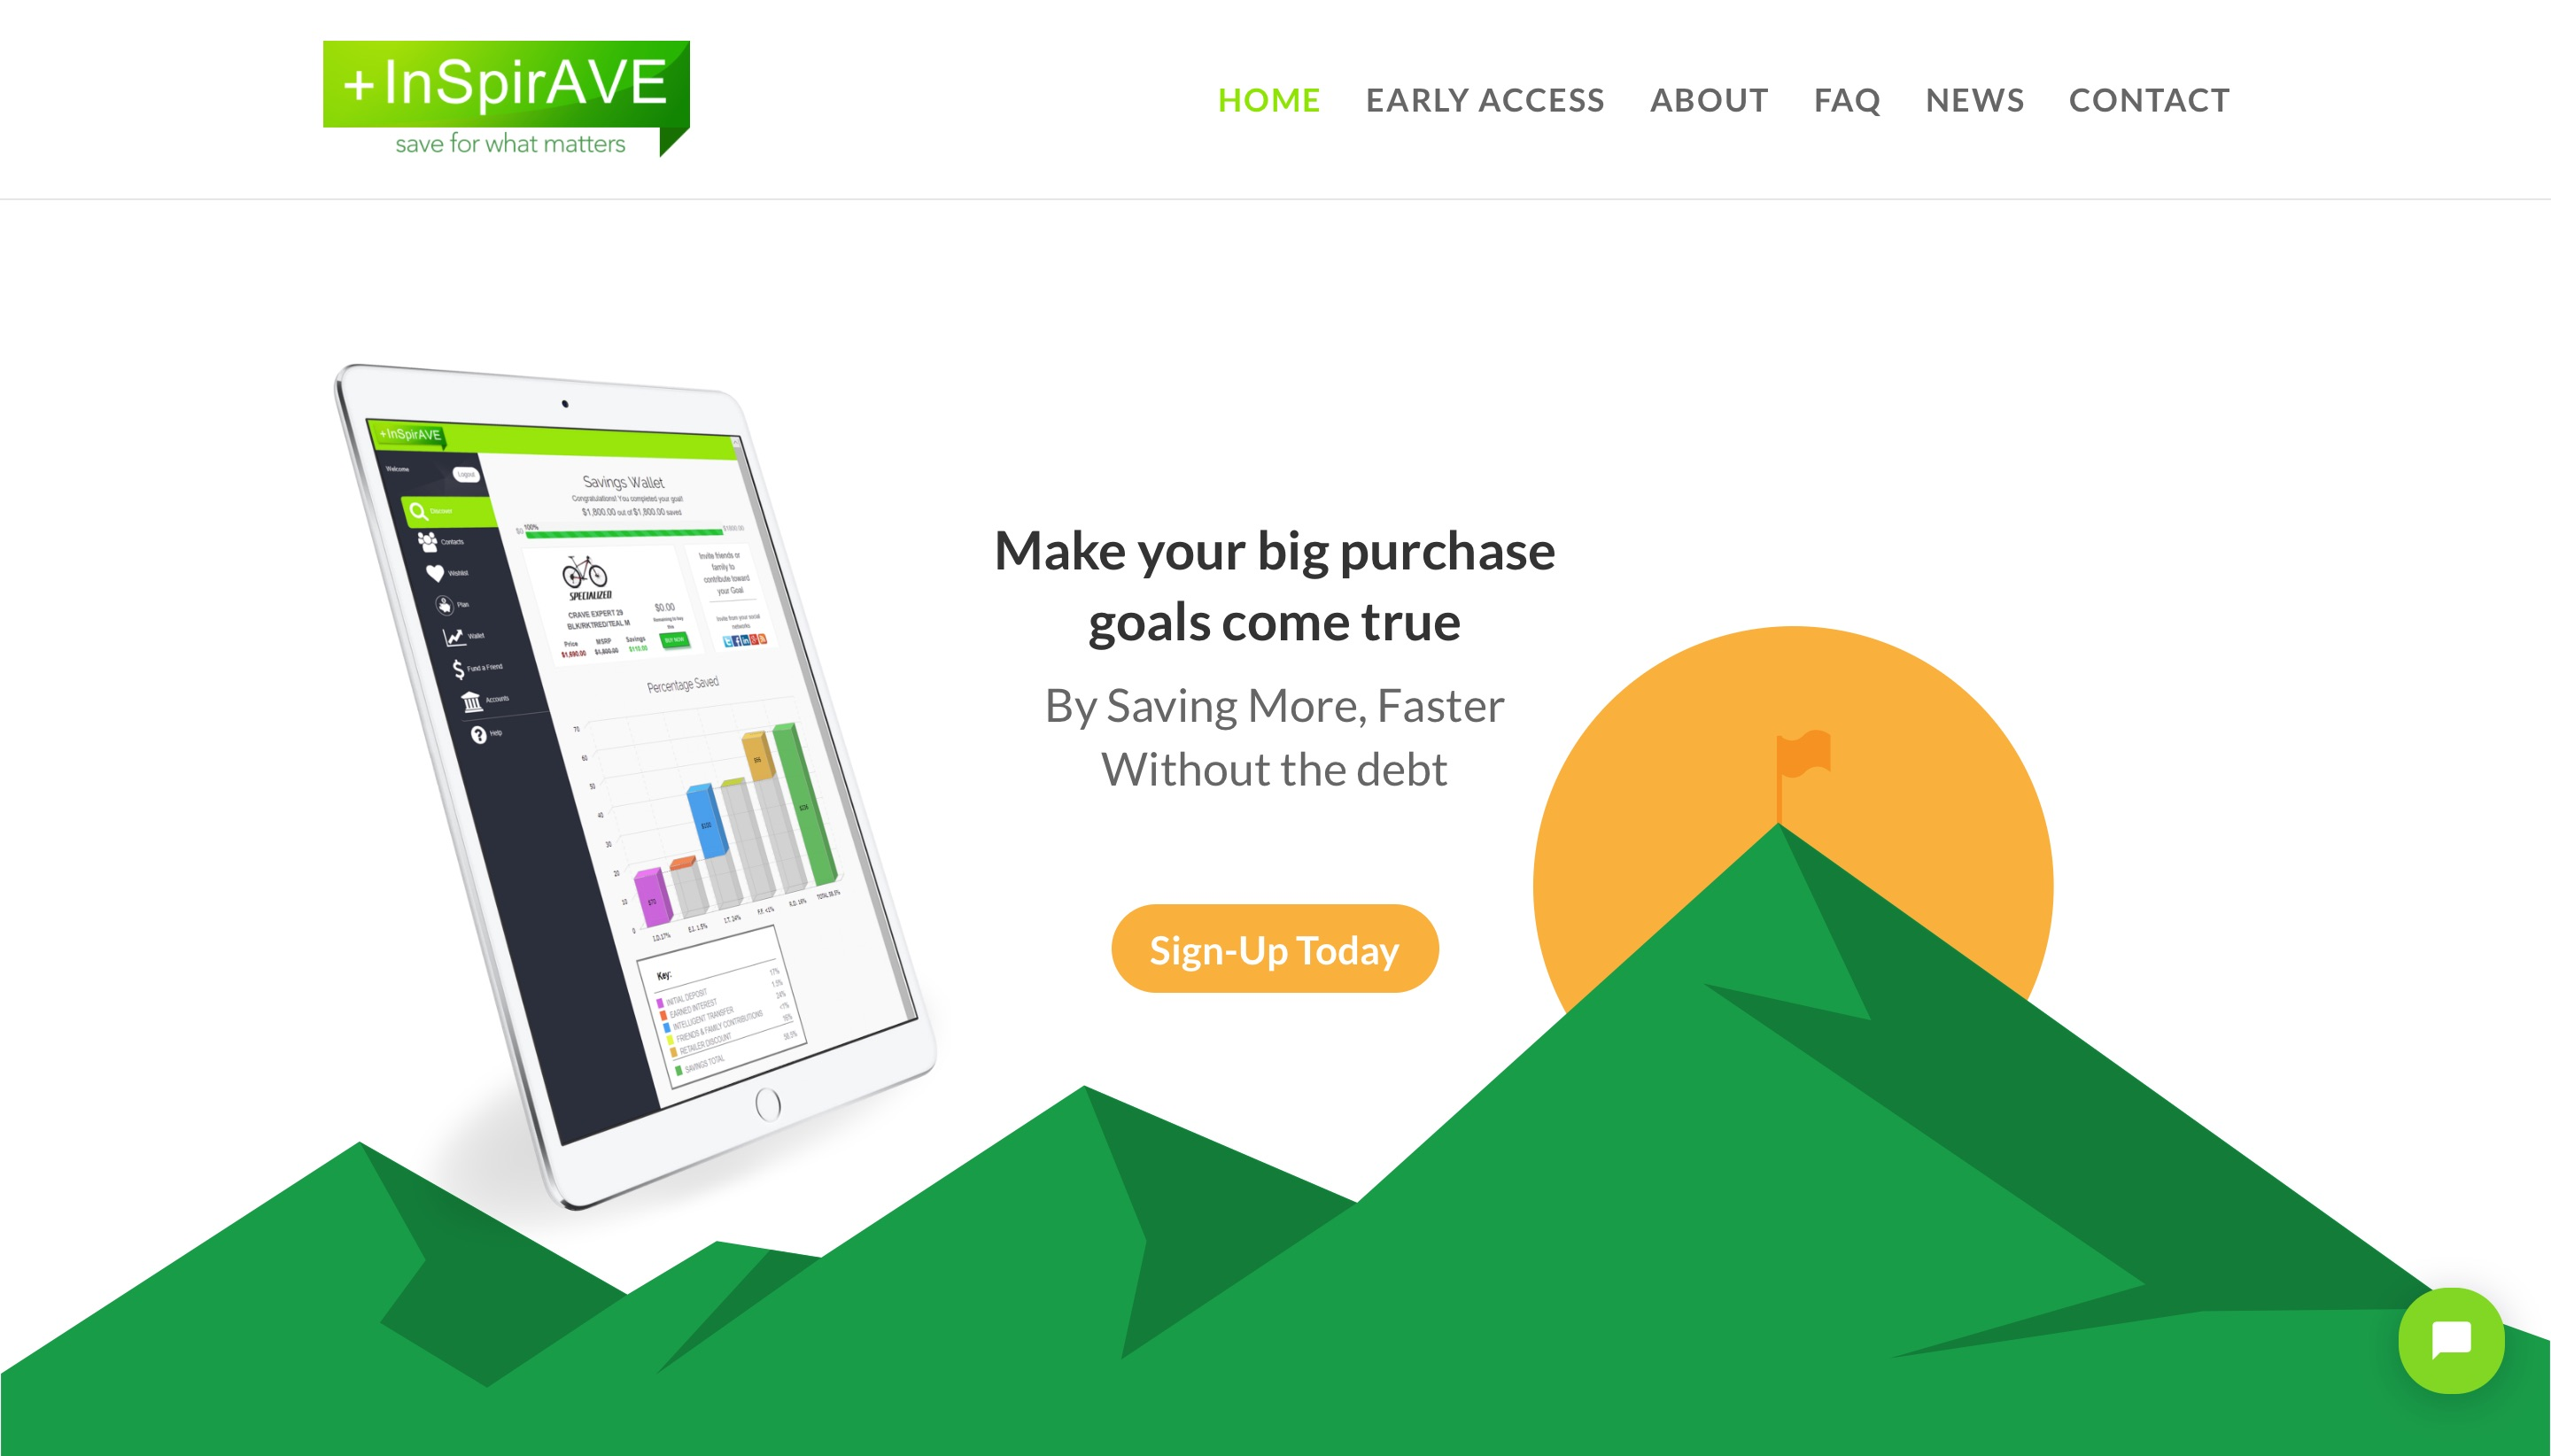 Saving for What Matters: A Q&A with INSPIRAVE Founder and CEO Om Kundu